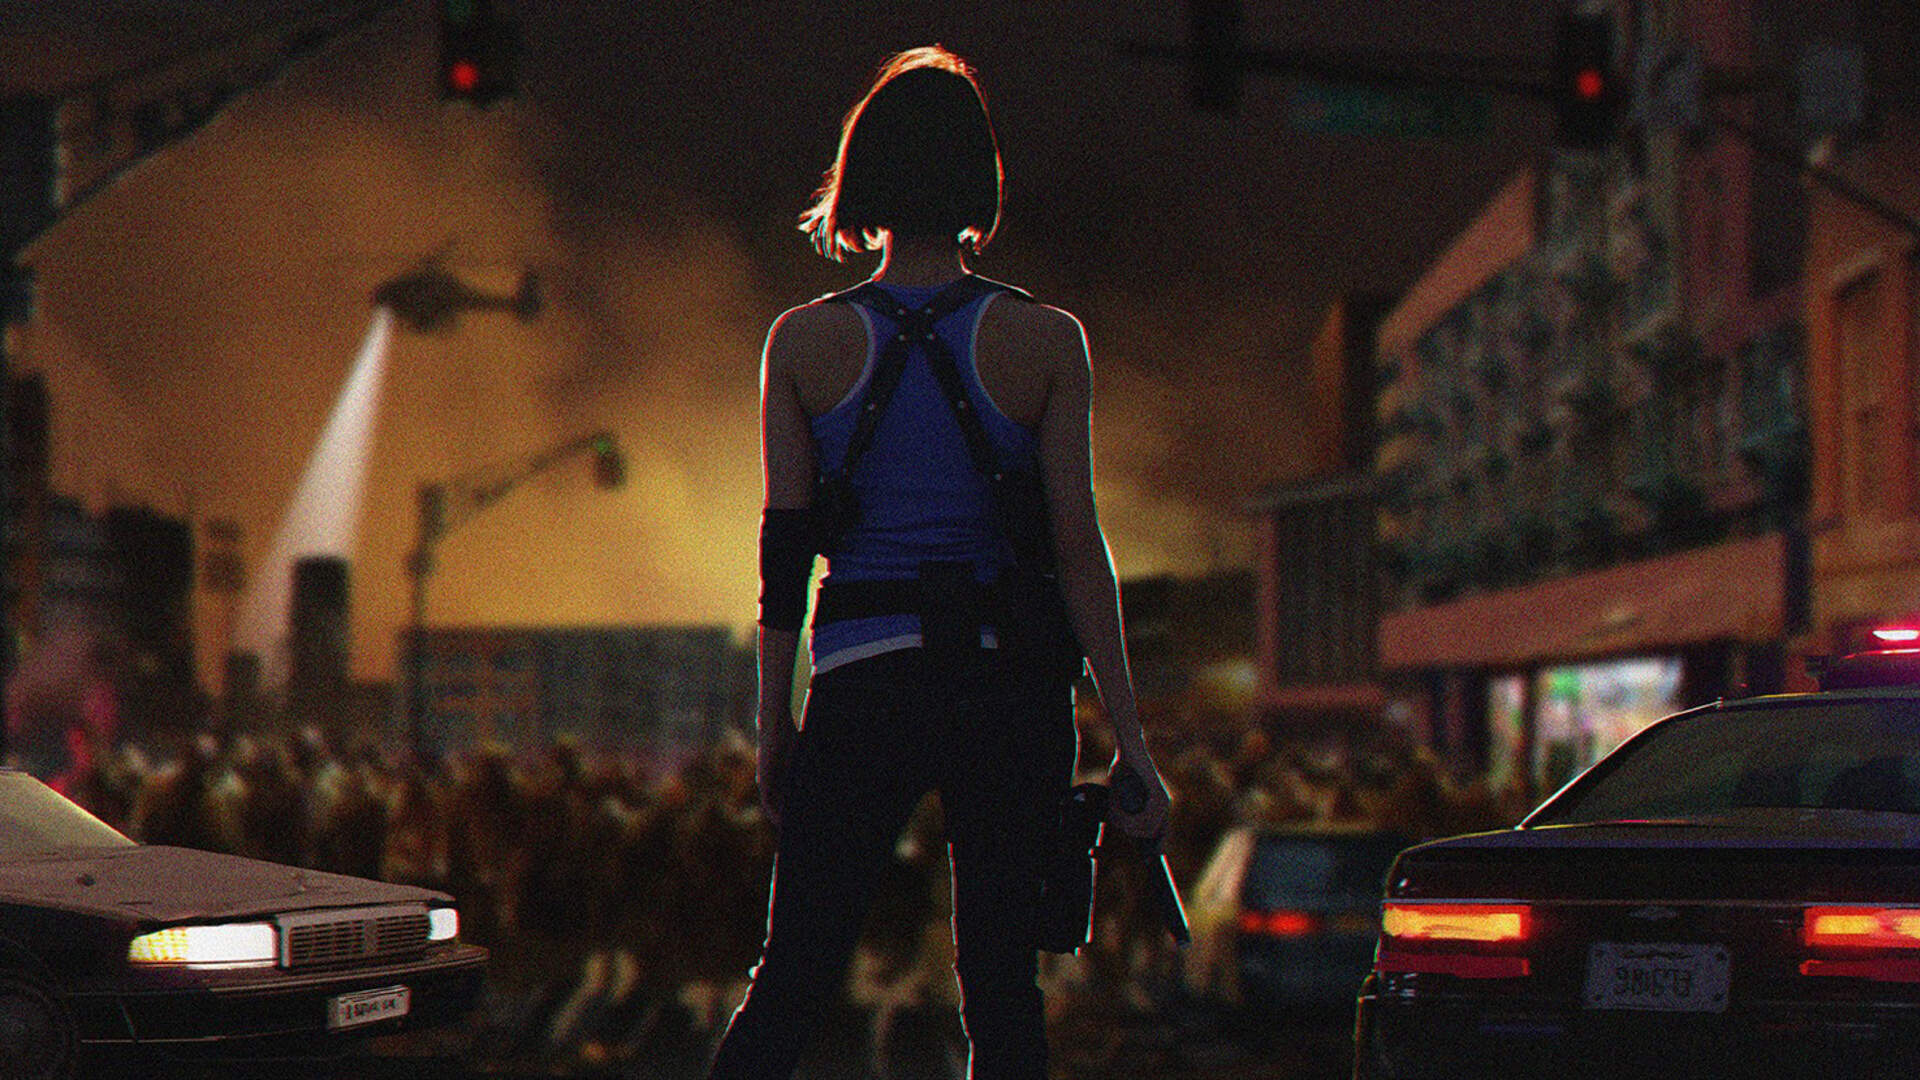 New Resident Evil 3 Remake Timeline Shows Carlos' Story Starts Before Jill's